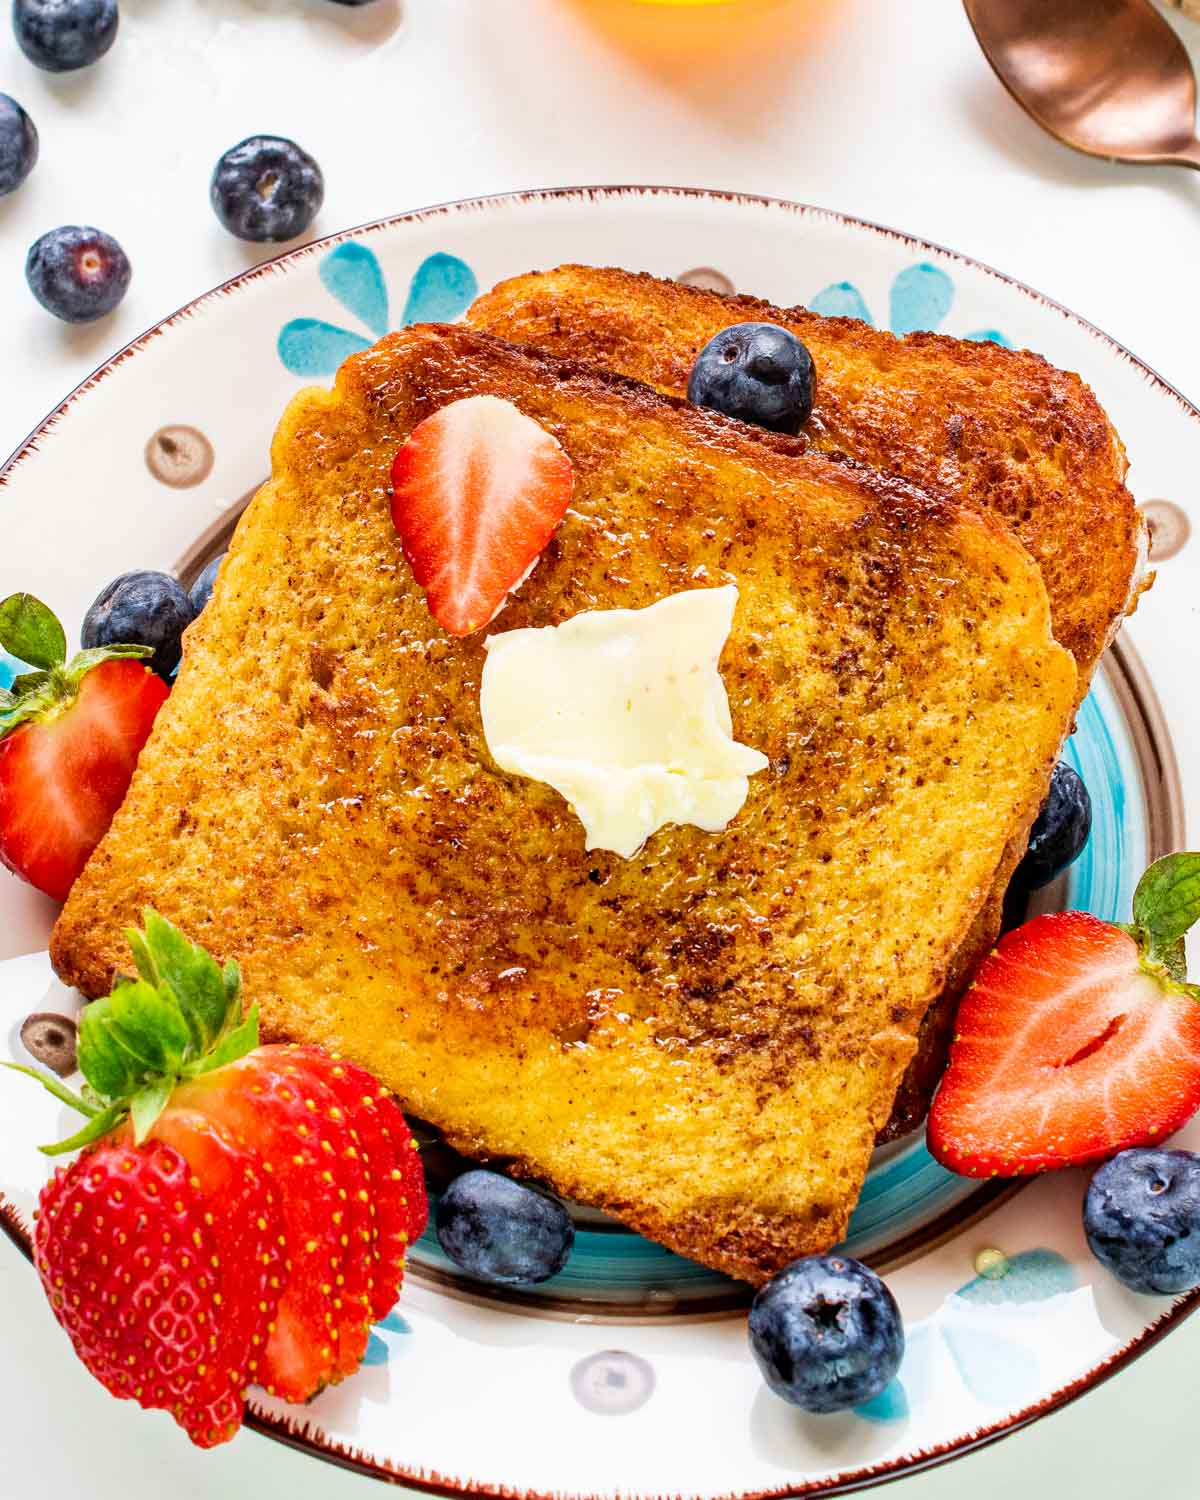 2 slices of french toast on a plate with butter and berries.